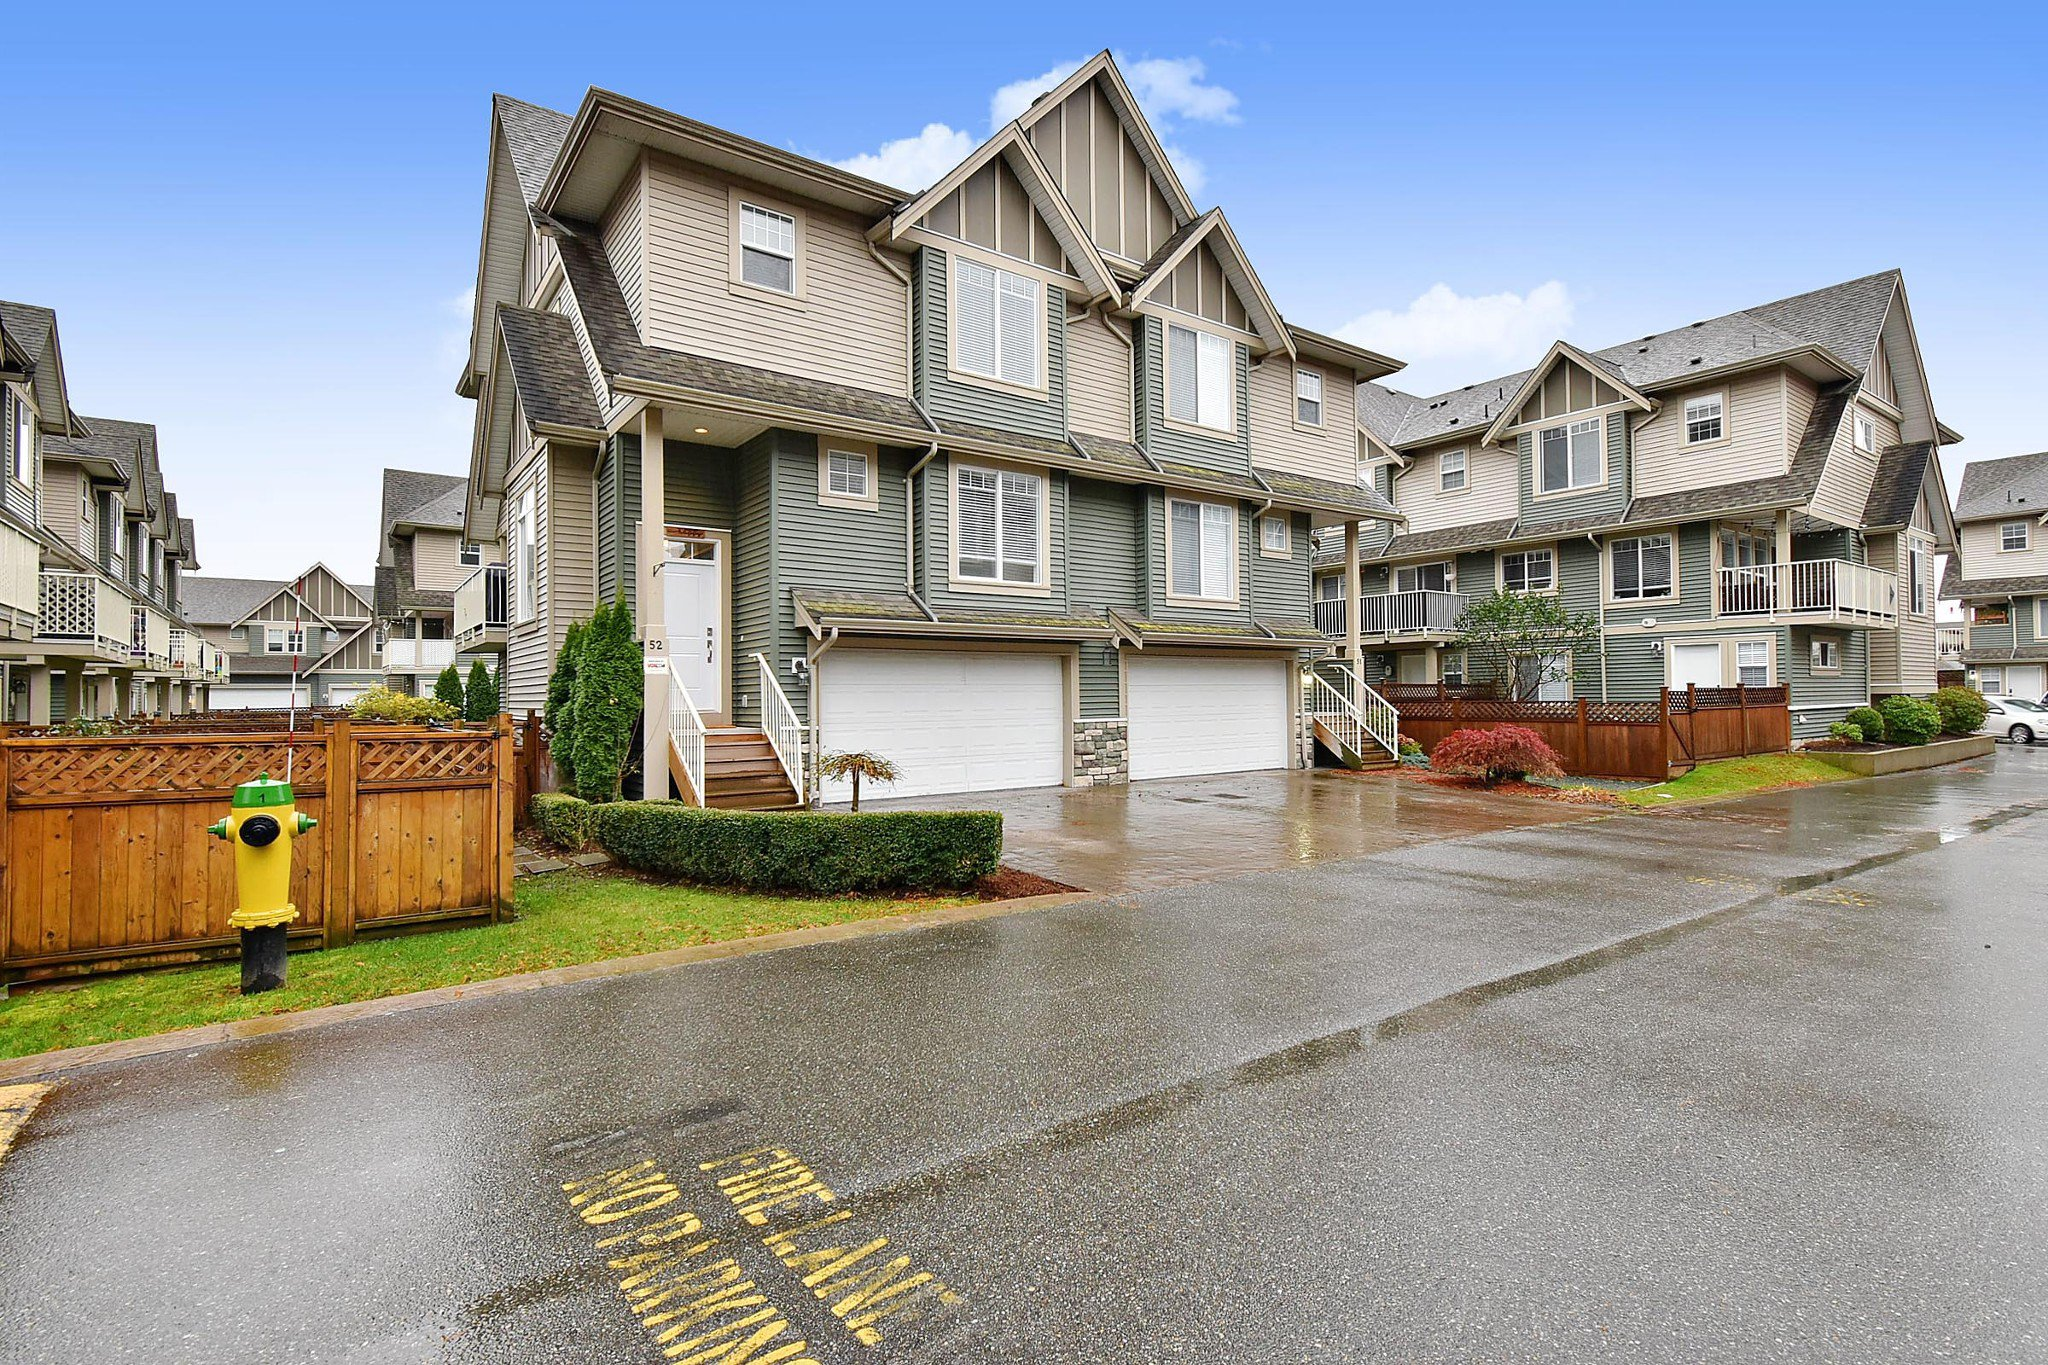 """Main Photo: 52 6498 SOUTHDOWNE Place in Chilliwack: Sardis East Vedder Rd Townhouse for sale in """"Village Green"""" (Sardis)  : MLS®# R2518776"""